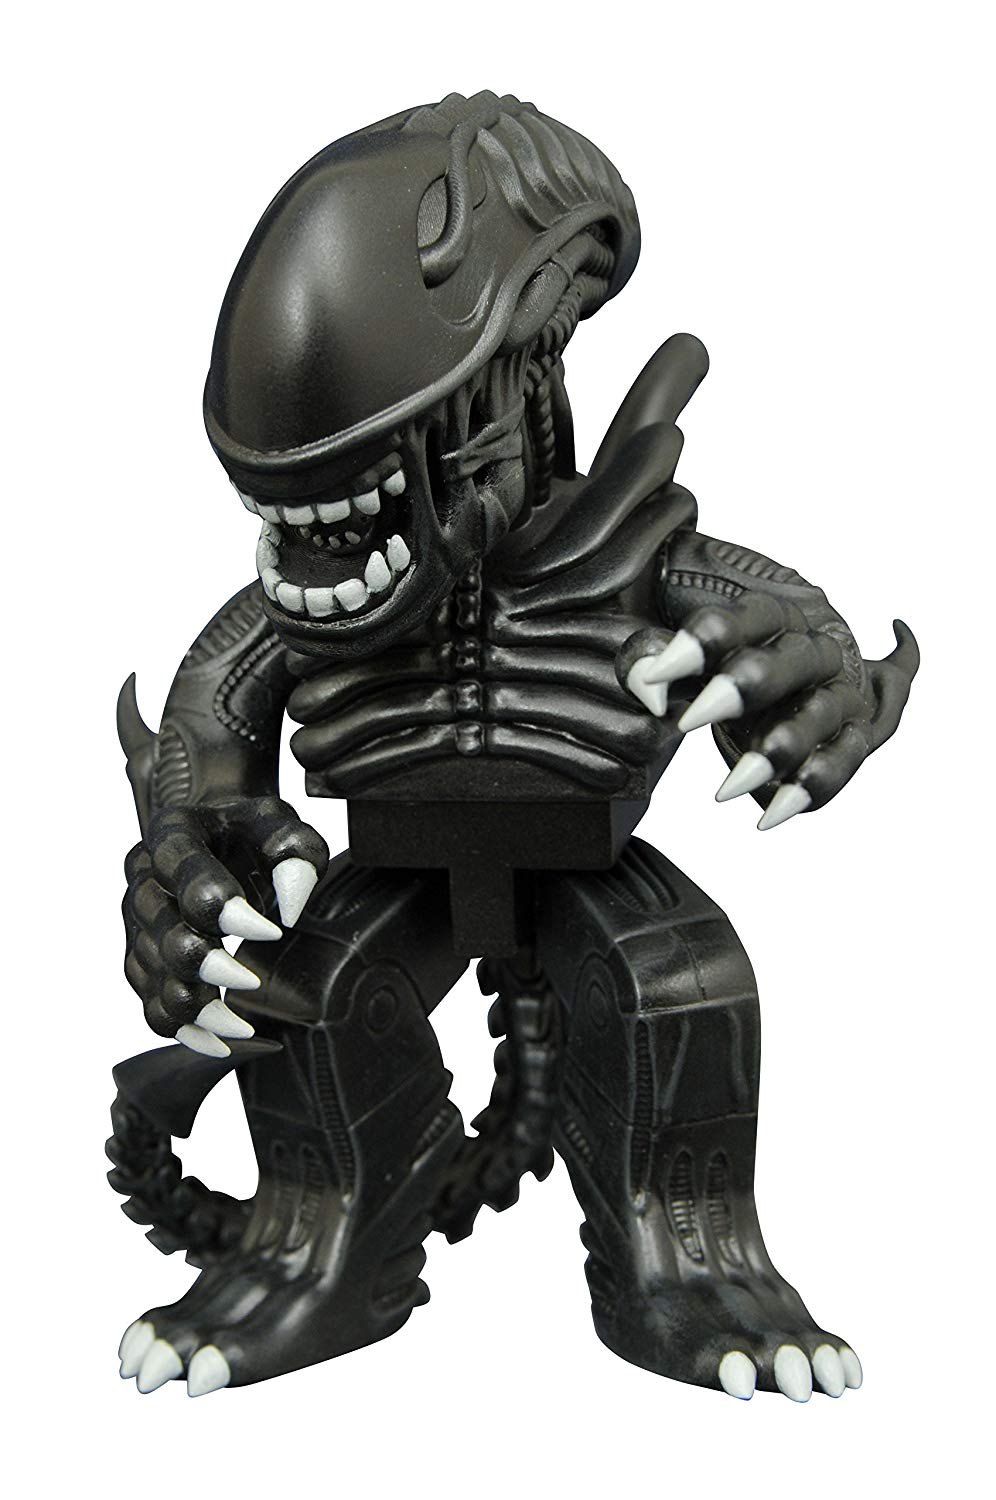 Diamond Select Toys Aliens: Alien Vinimate Vinyl Figure